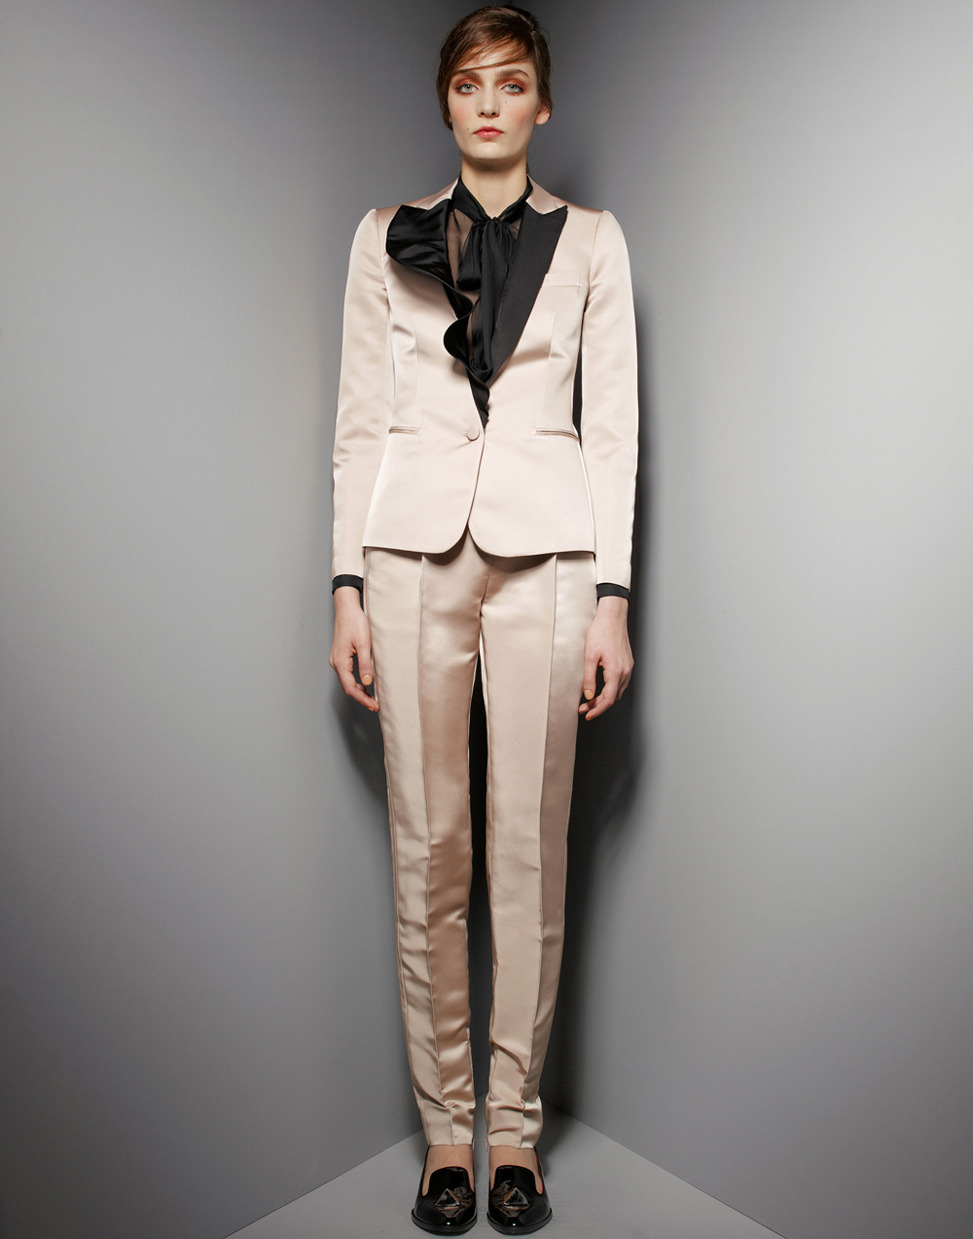 Head-to-toe romantic detailing, courtesy of Valentino's prefall collection.